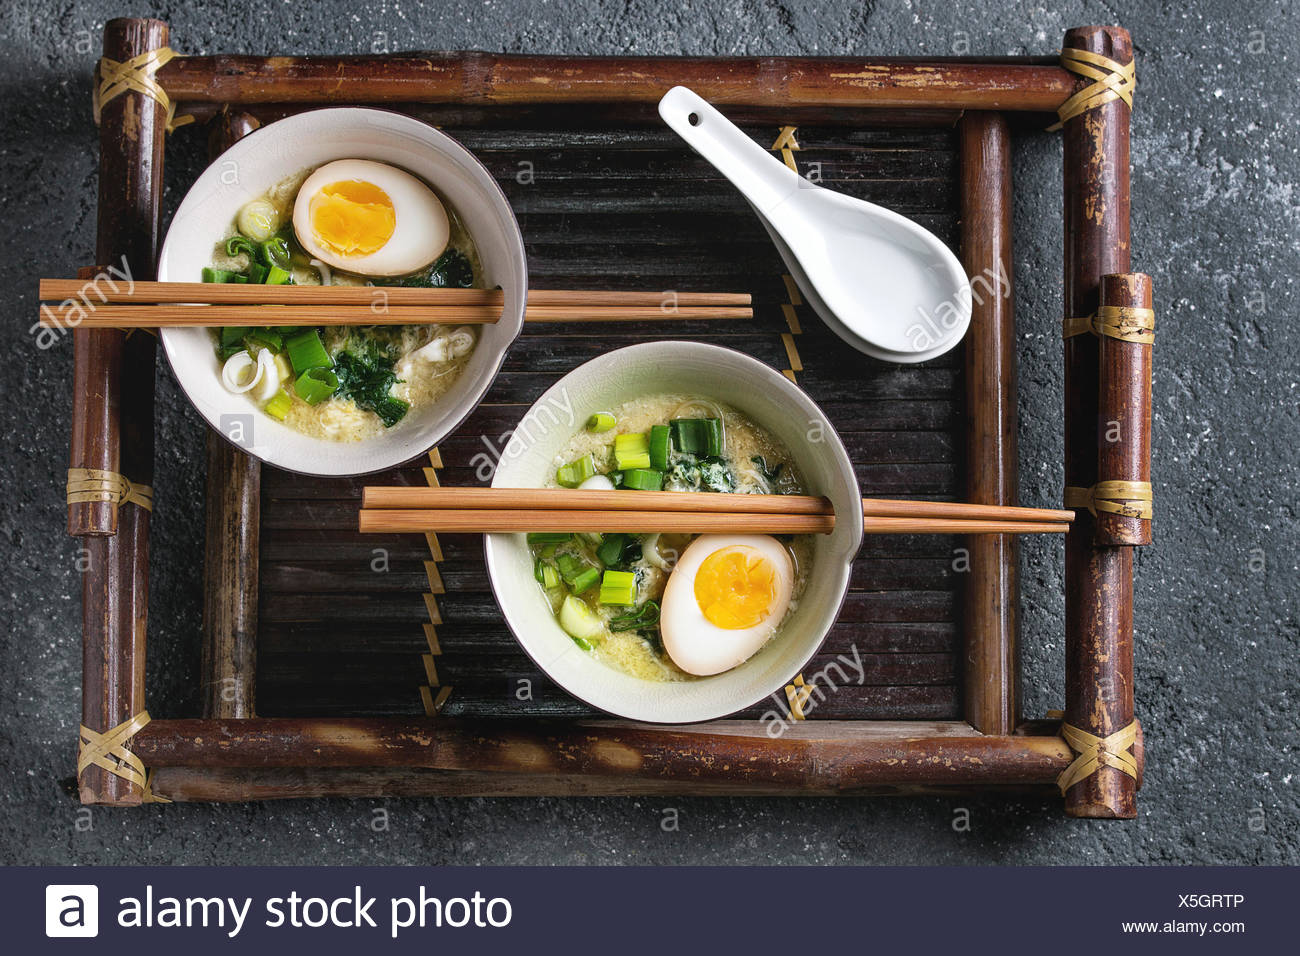 Two bowls with asian style soup with scrambled eggs, half of marinated egg, spring onion, spinach served with wood chopsticks and spoons on bamboo tra - Stock Image